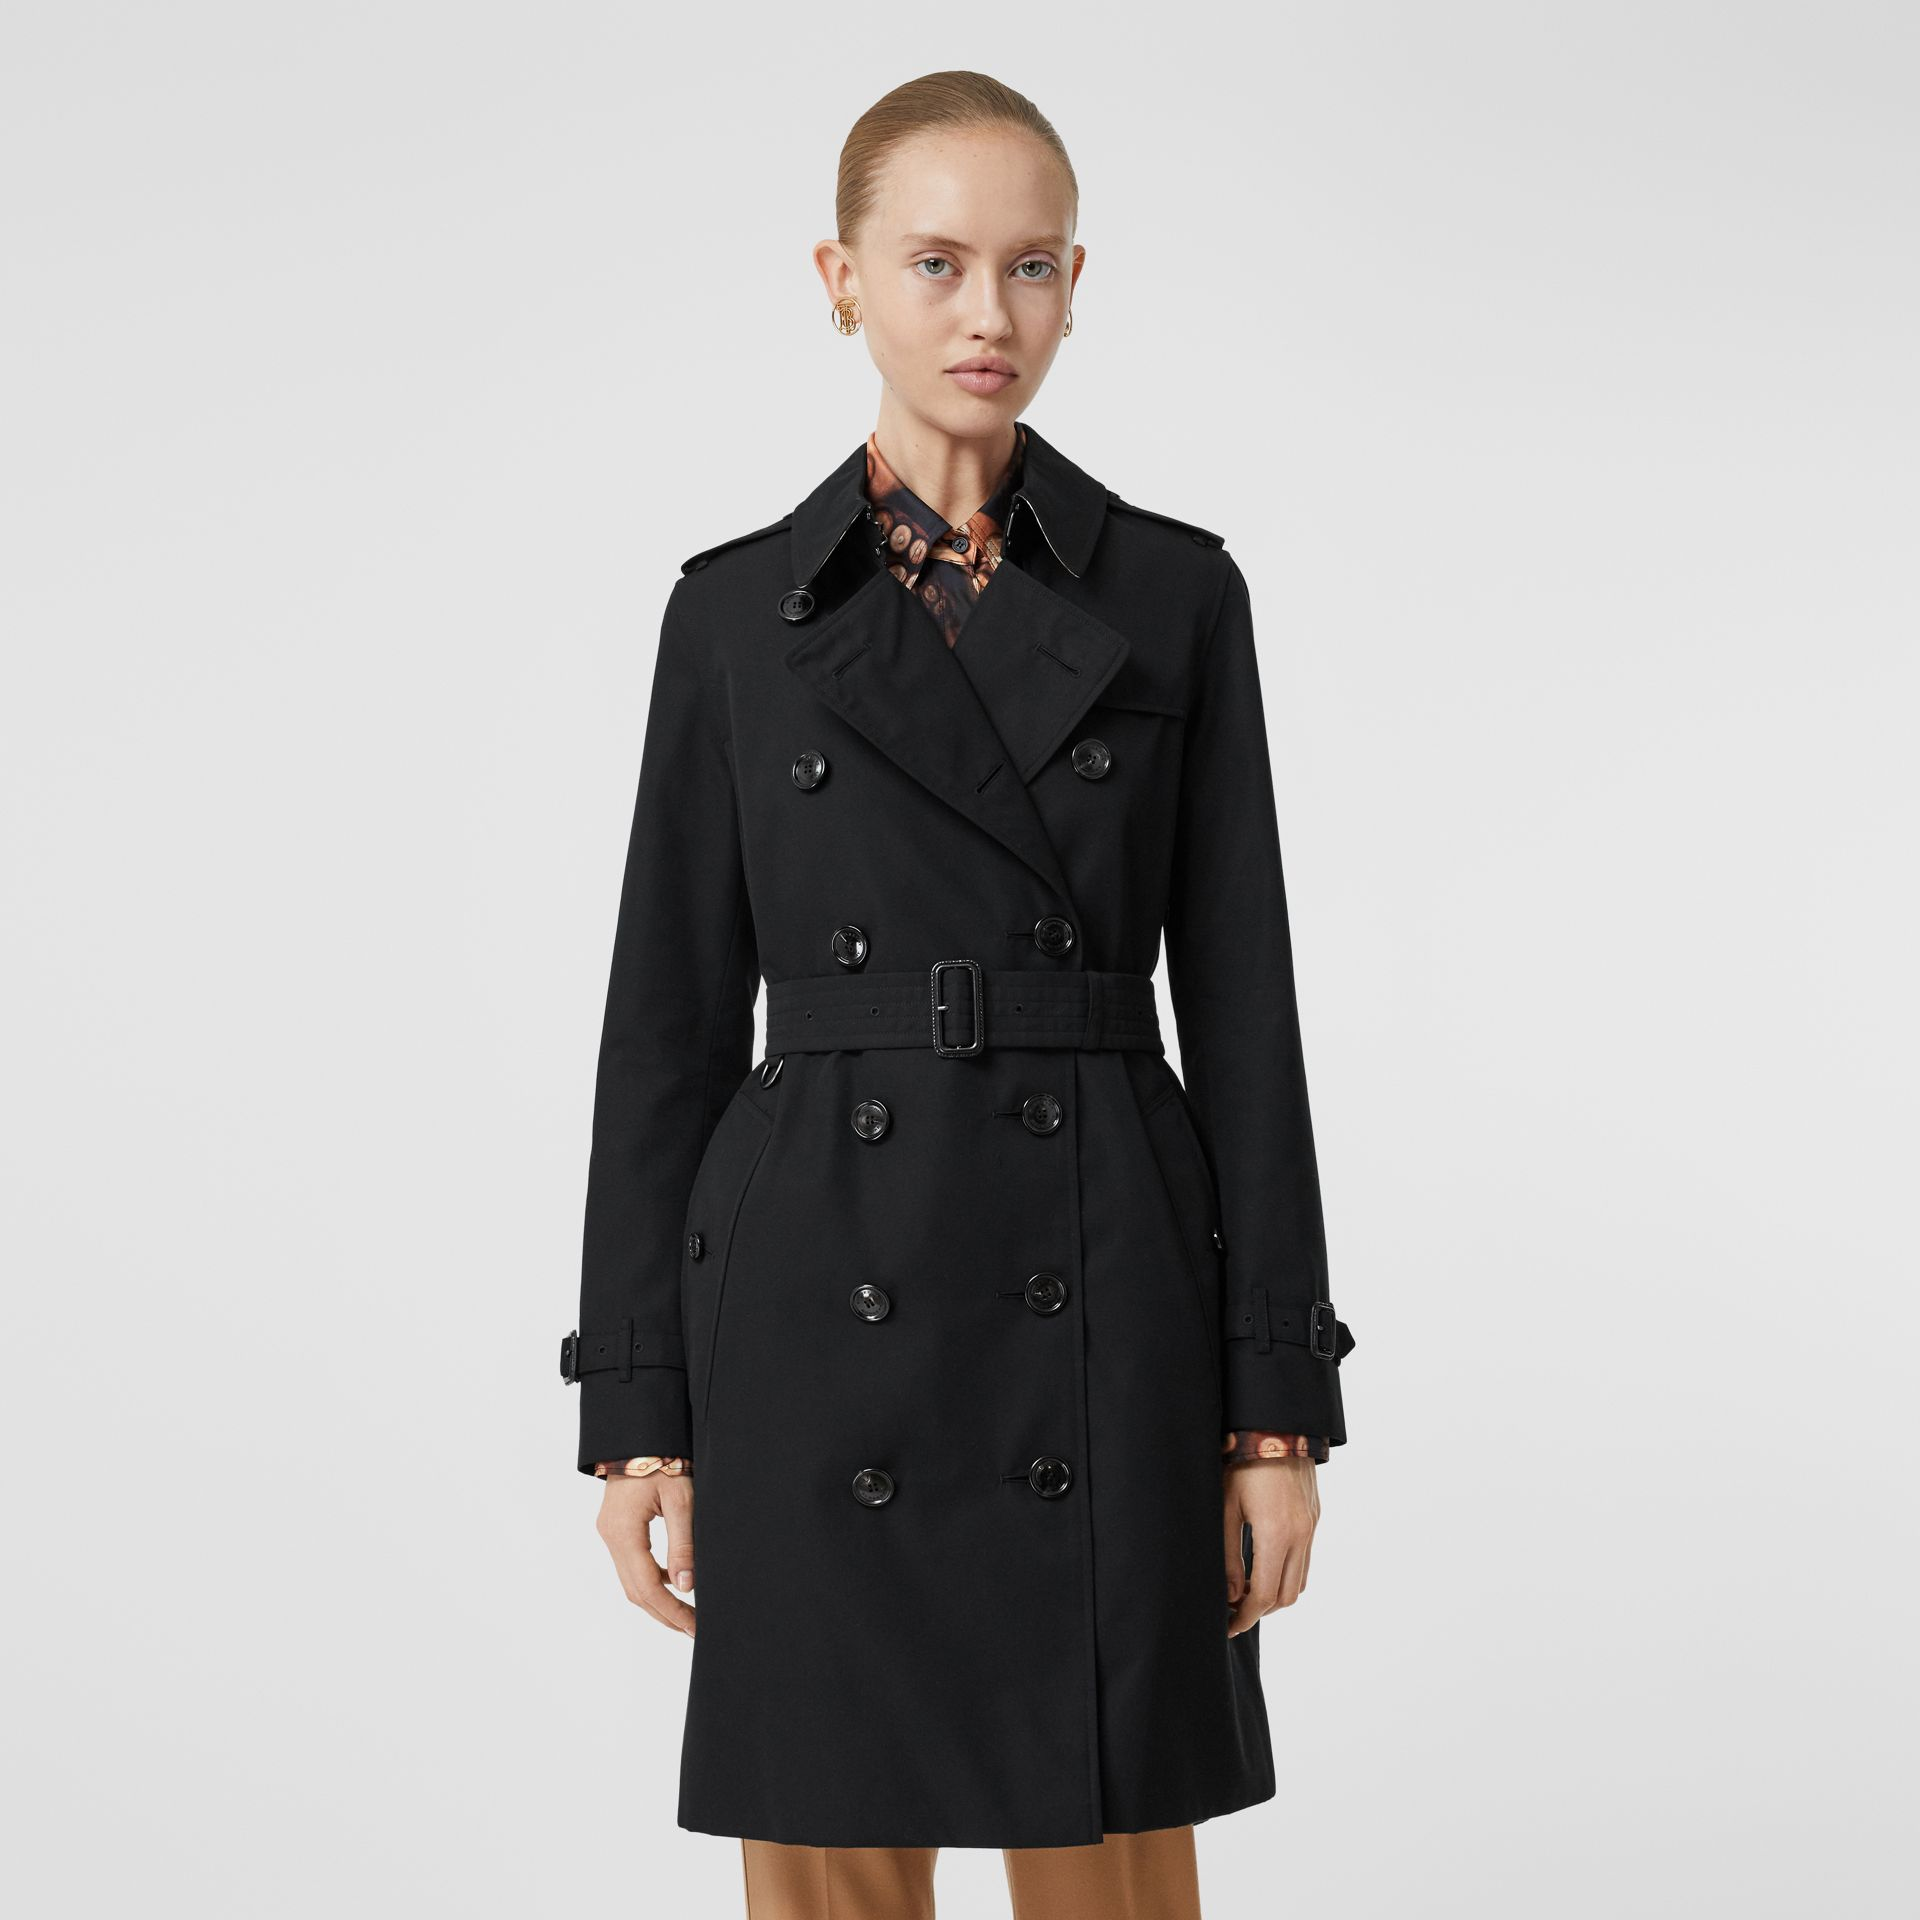 The Mid-length Kensington Heritage Trench Coat in Black - Women | Burberry - gallery image 7